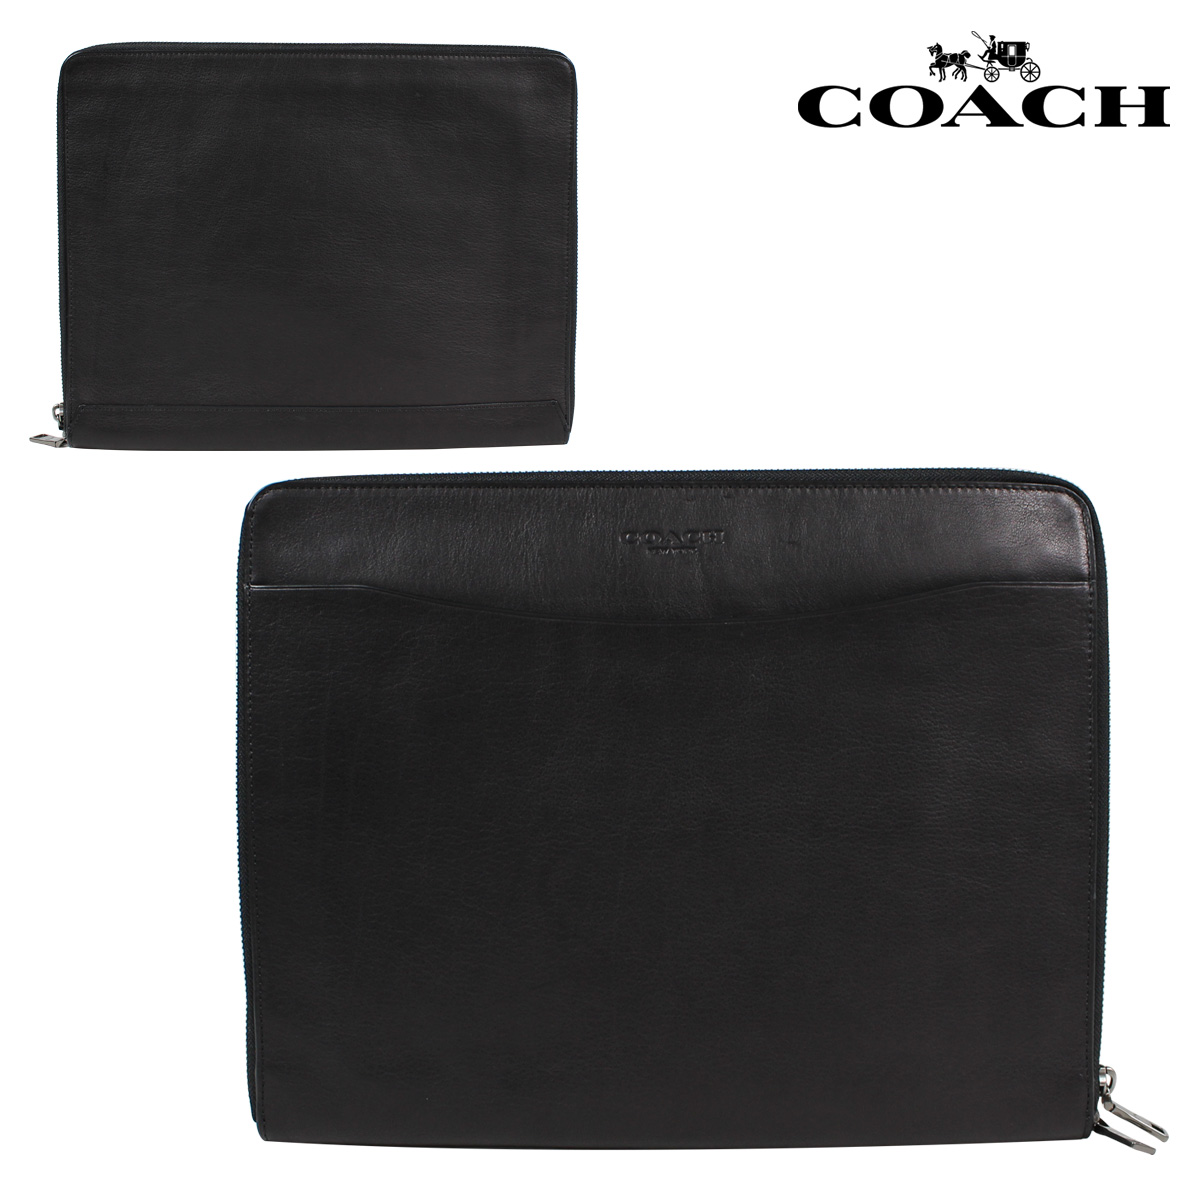 Sold outcoach coach men bag clutch bag tablet pc case f63398 black